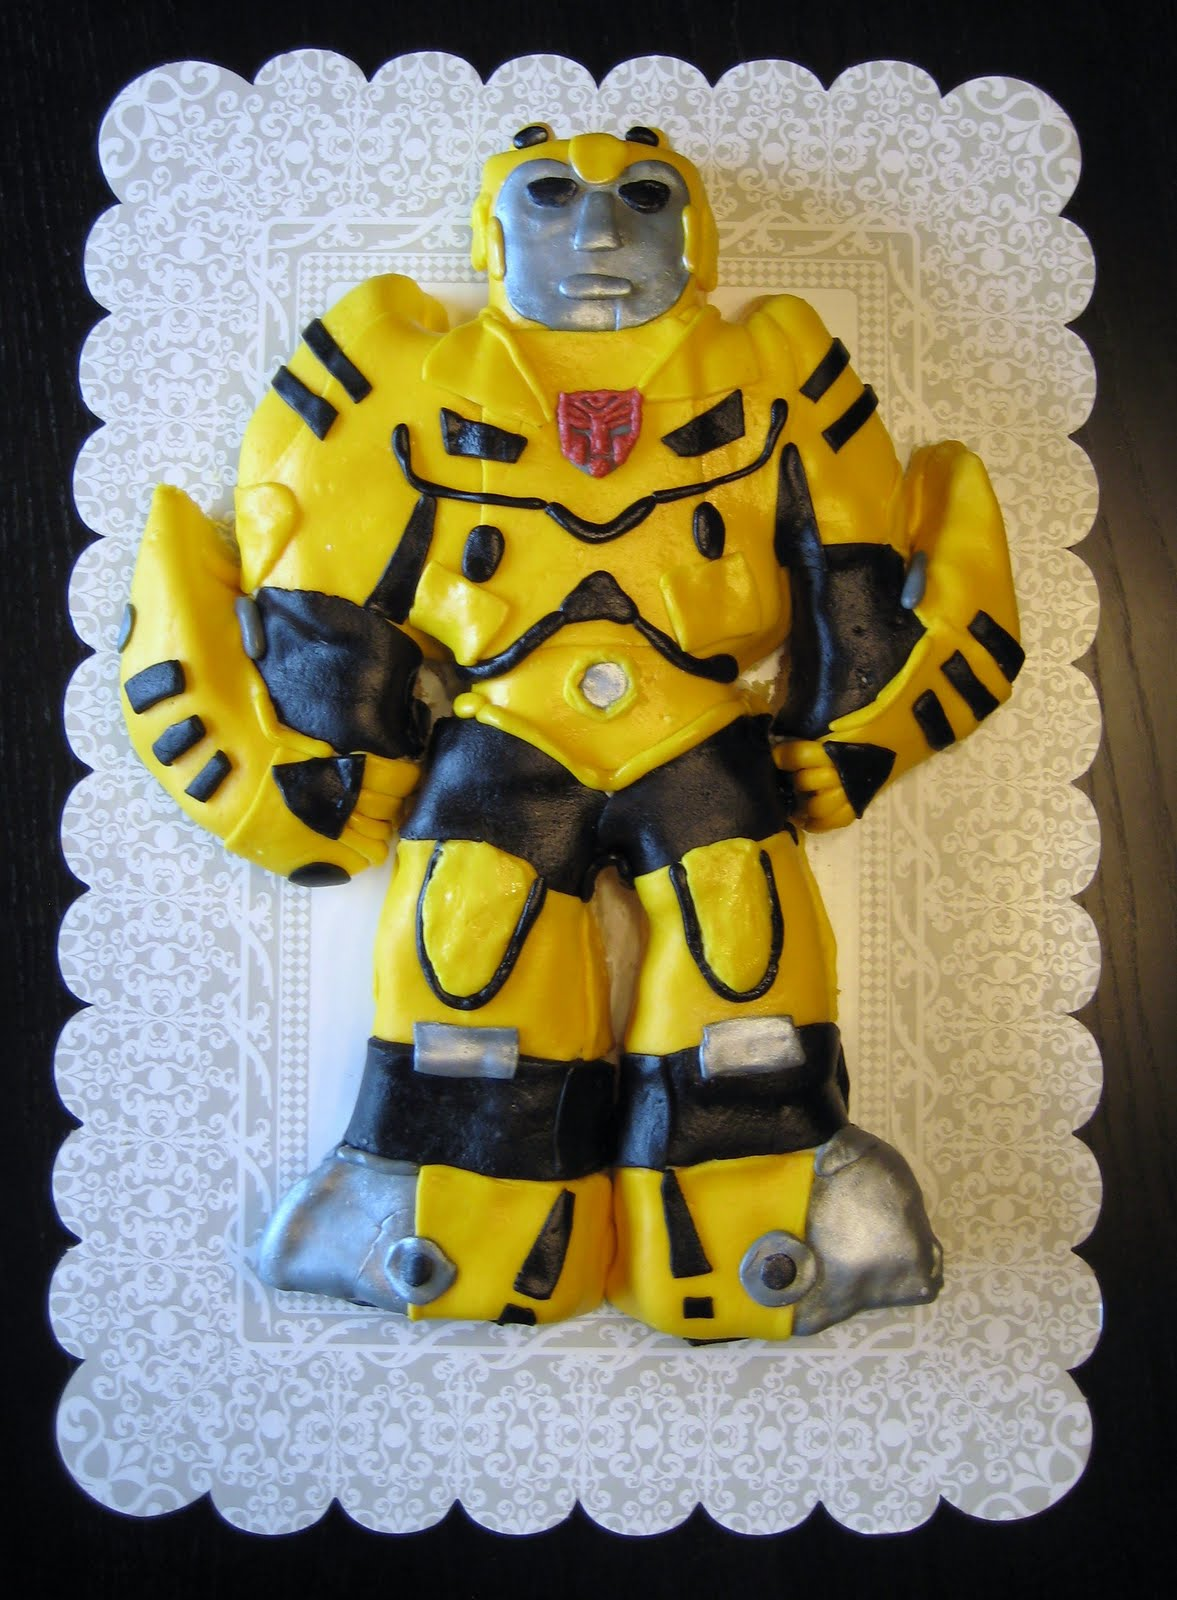 Enjoyable Transformer Cakes Decoration Ideas Little Birthday Cakes Personalised Birthday Cards Paralily Jamesorg